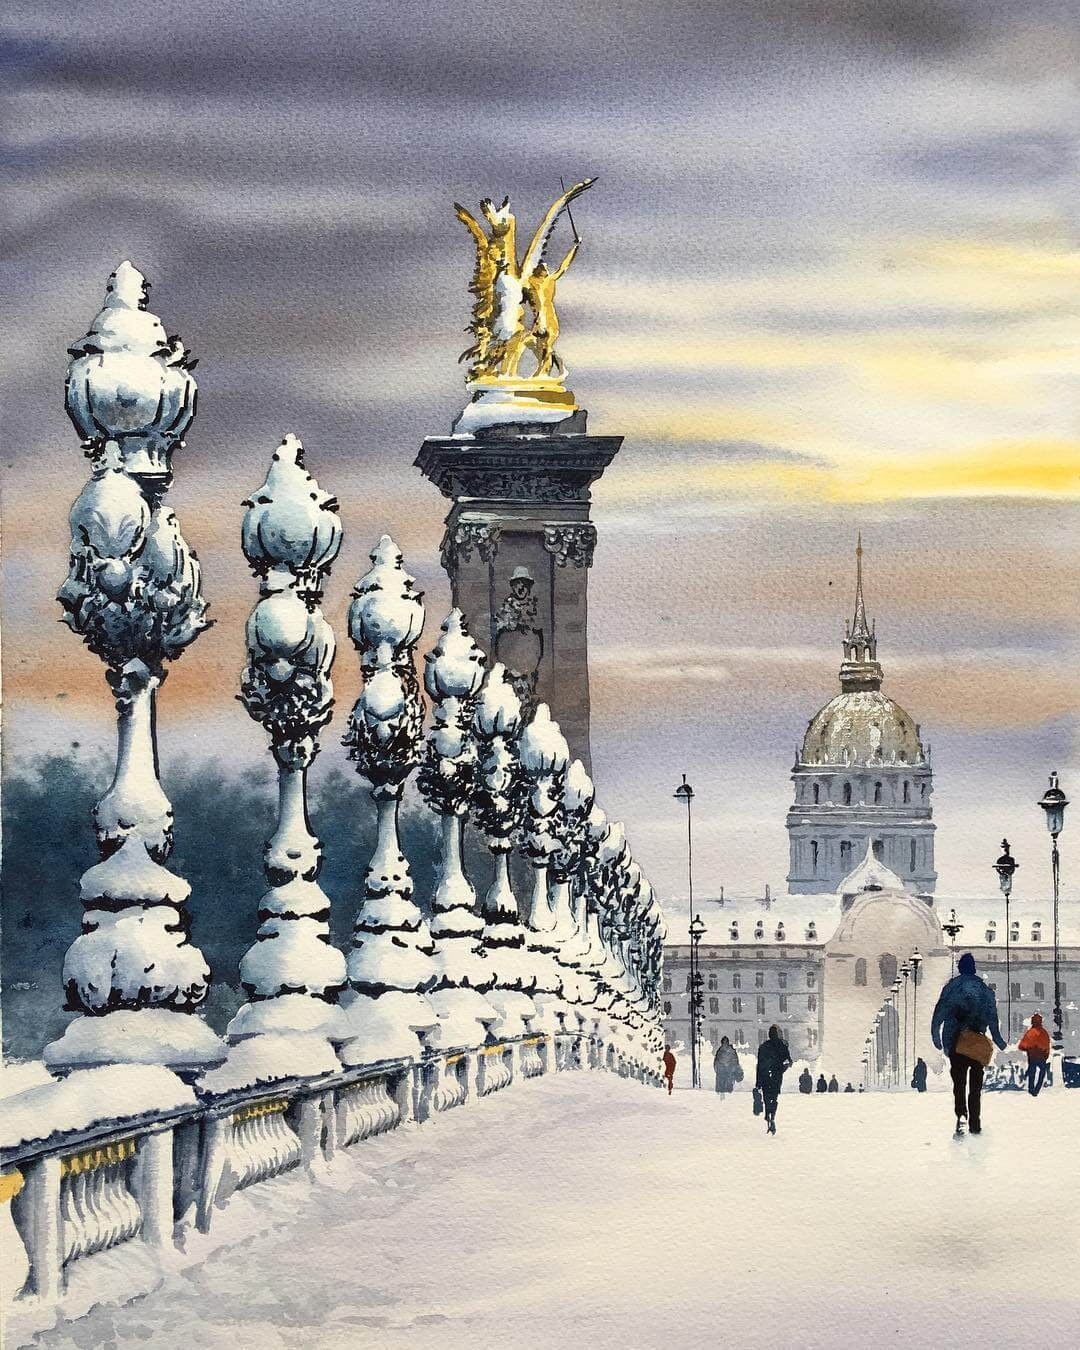 13-Pont-Alexander-III-Igor-Dubovoy-Realistic-Urban-Watercolor-Paintings-www-designstack-co